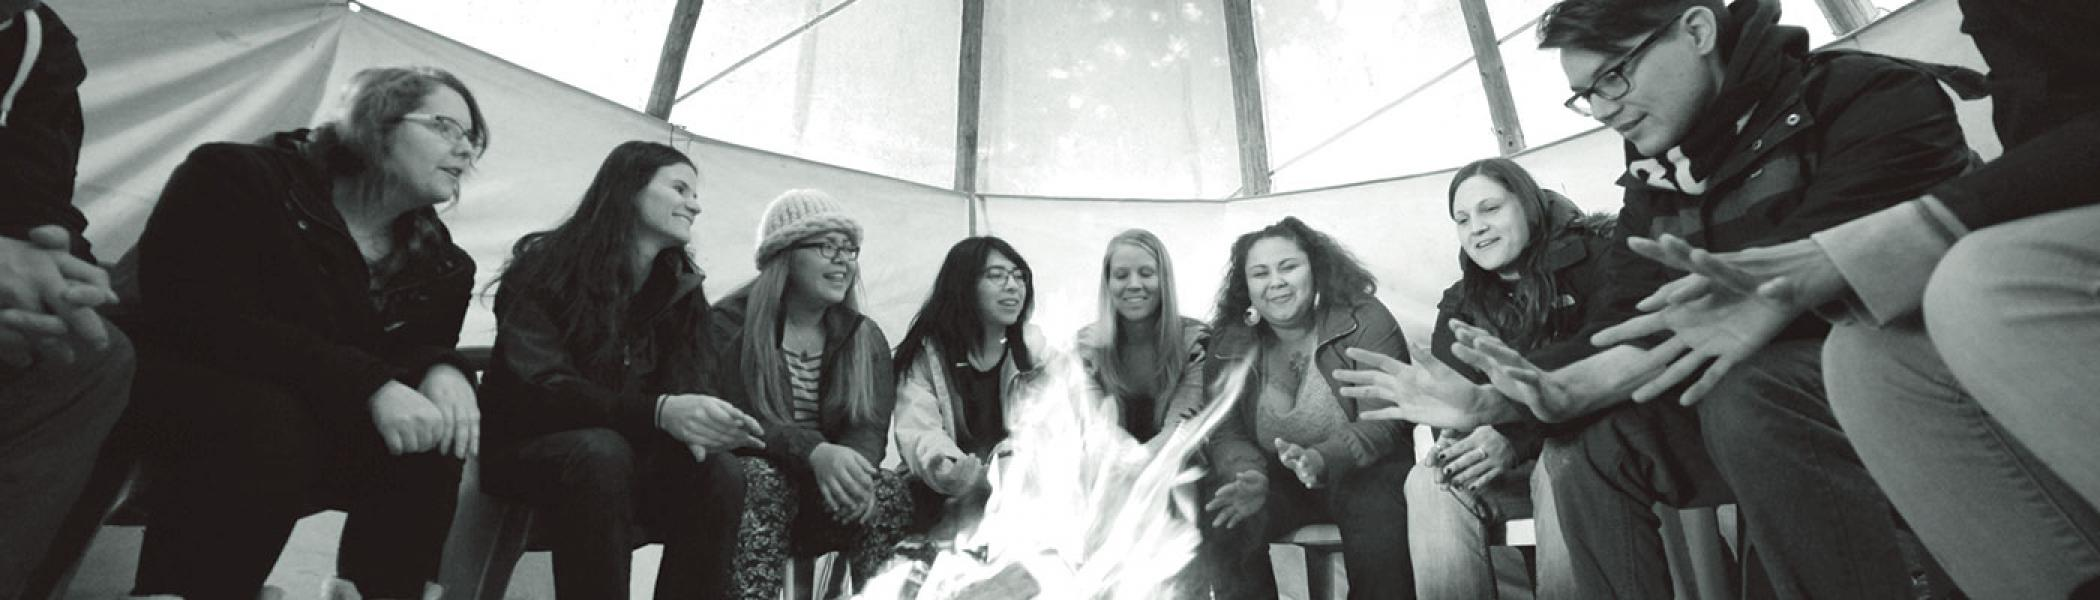 A group of students gathered in a tipi around a fire for class in the late fall